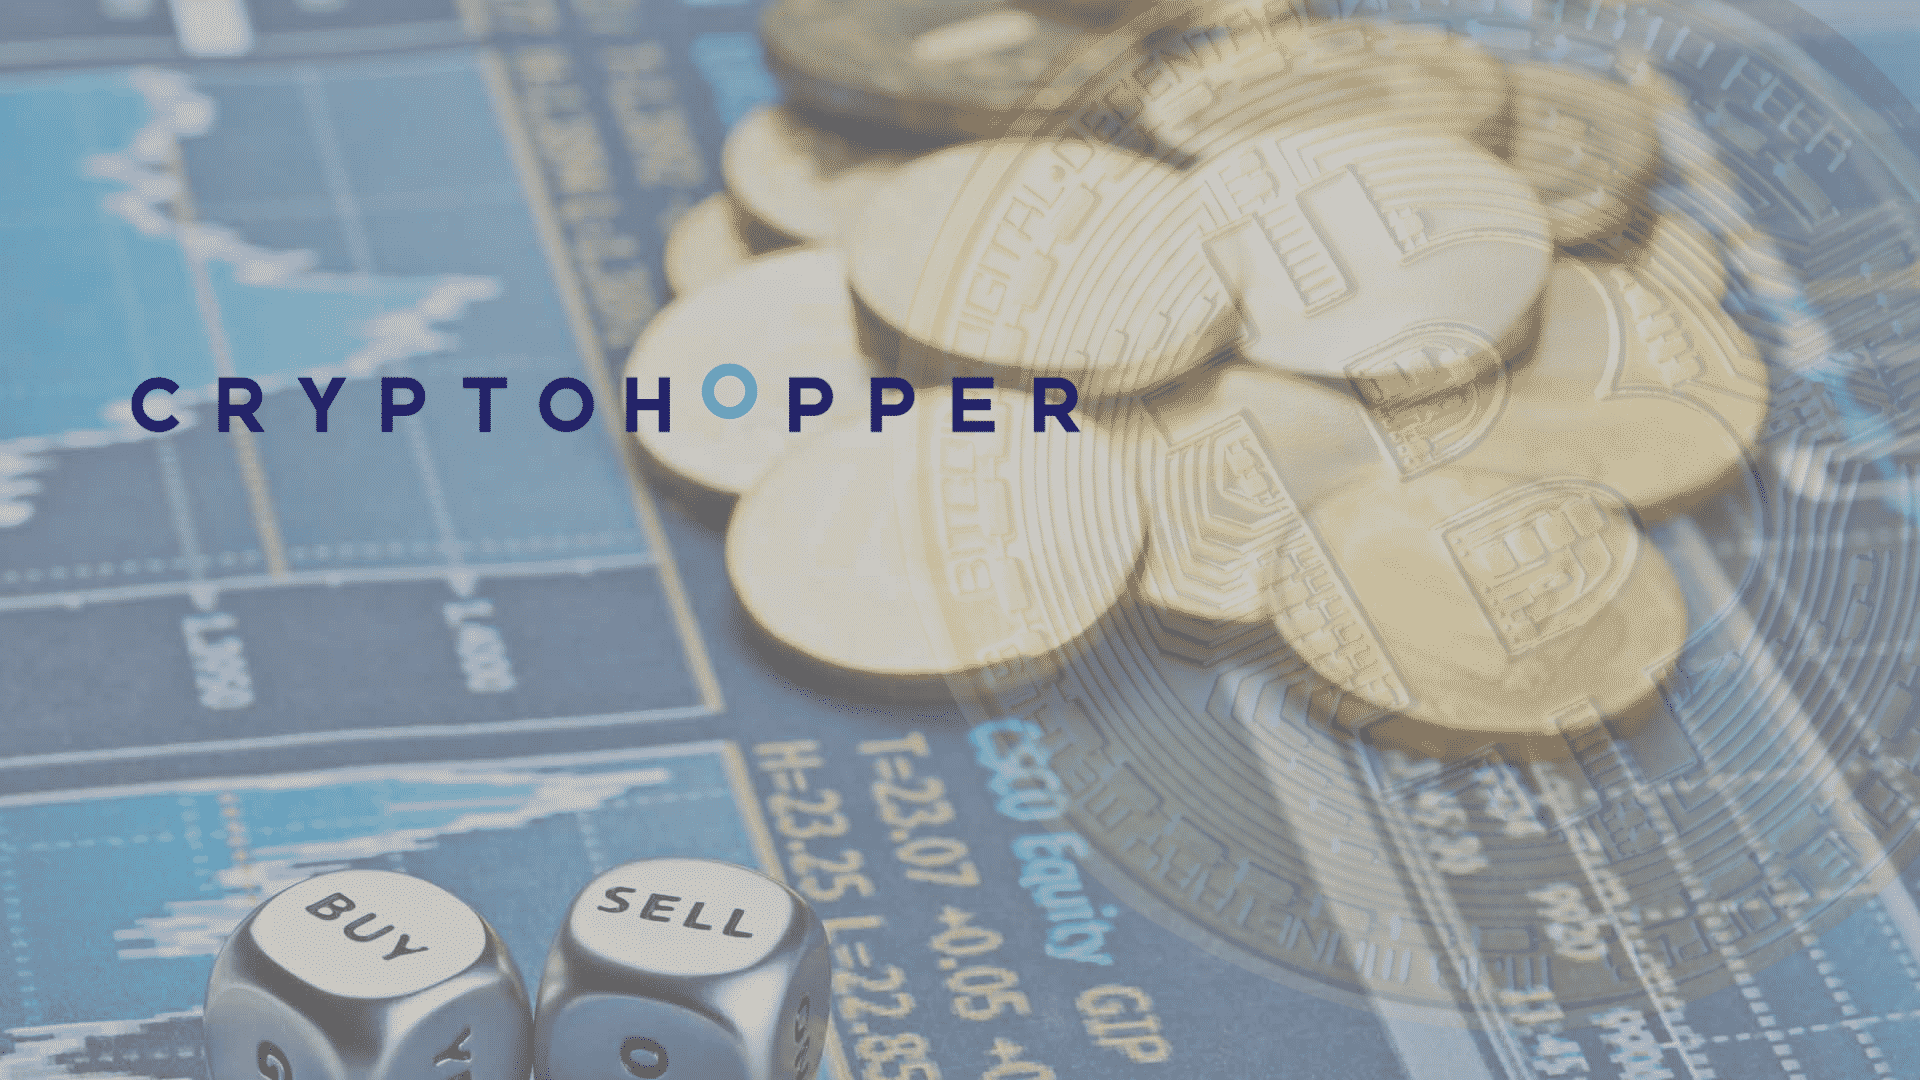 Follow and Copy Experienced Crypto Traders in the Cryptohopper Marketplace